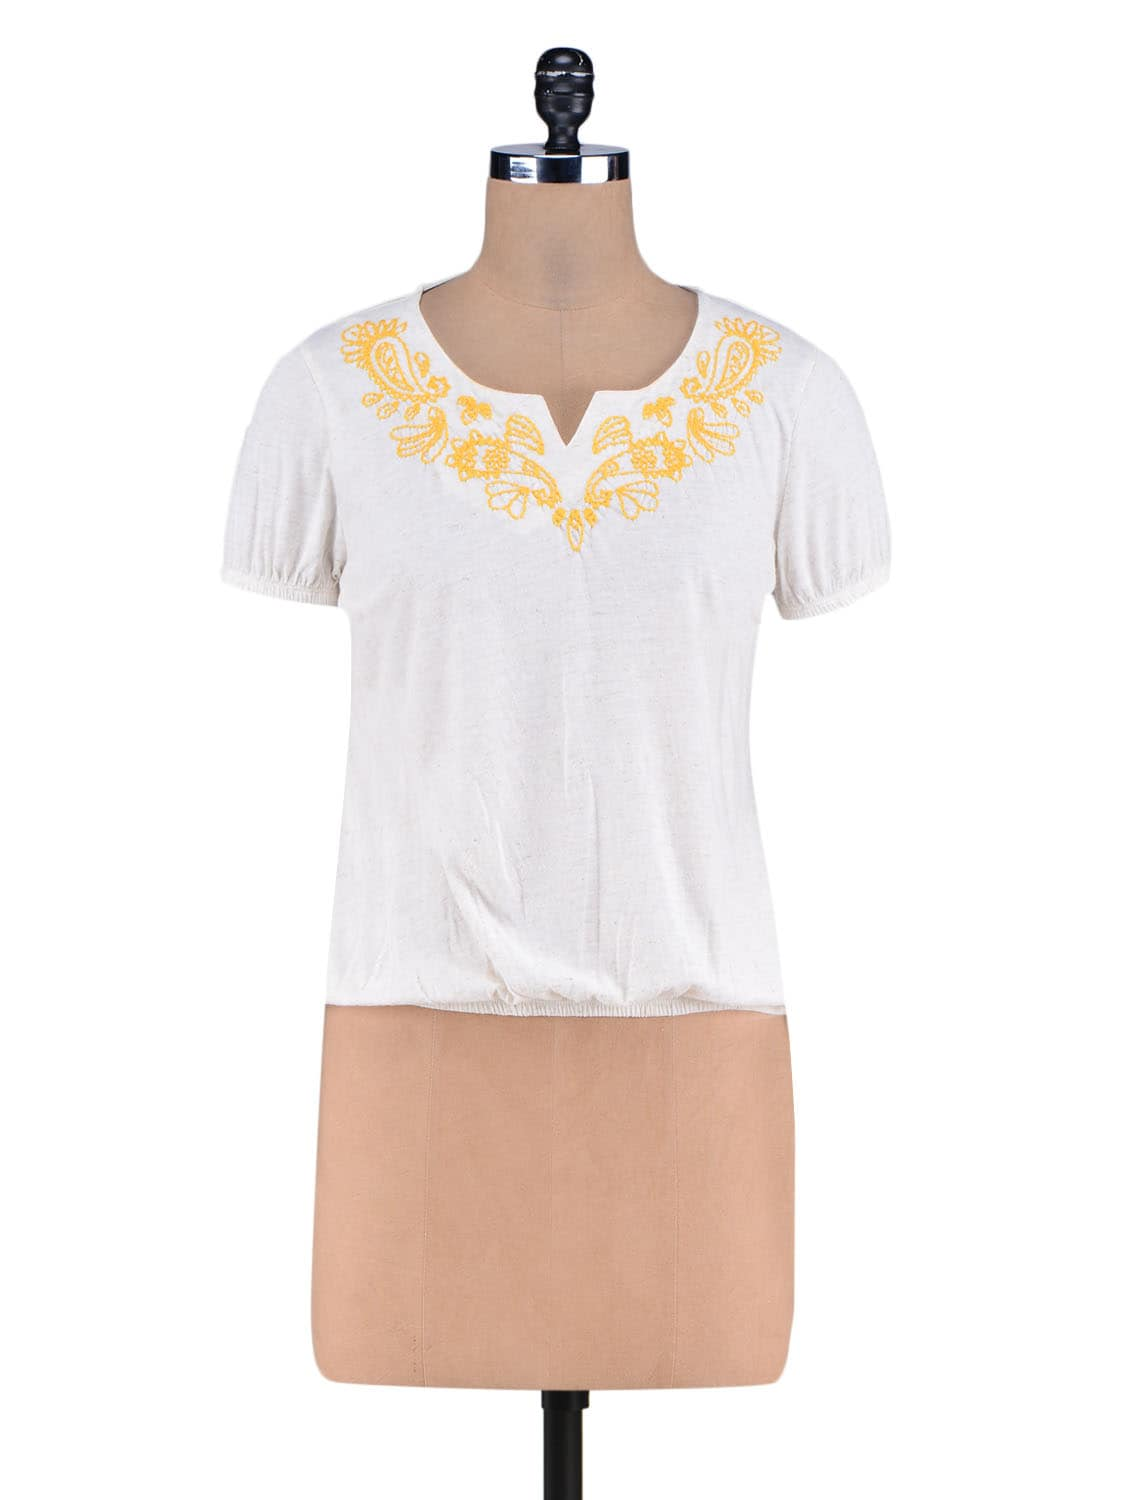 White Embroidered Knitted Cotton Top - By